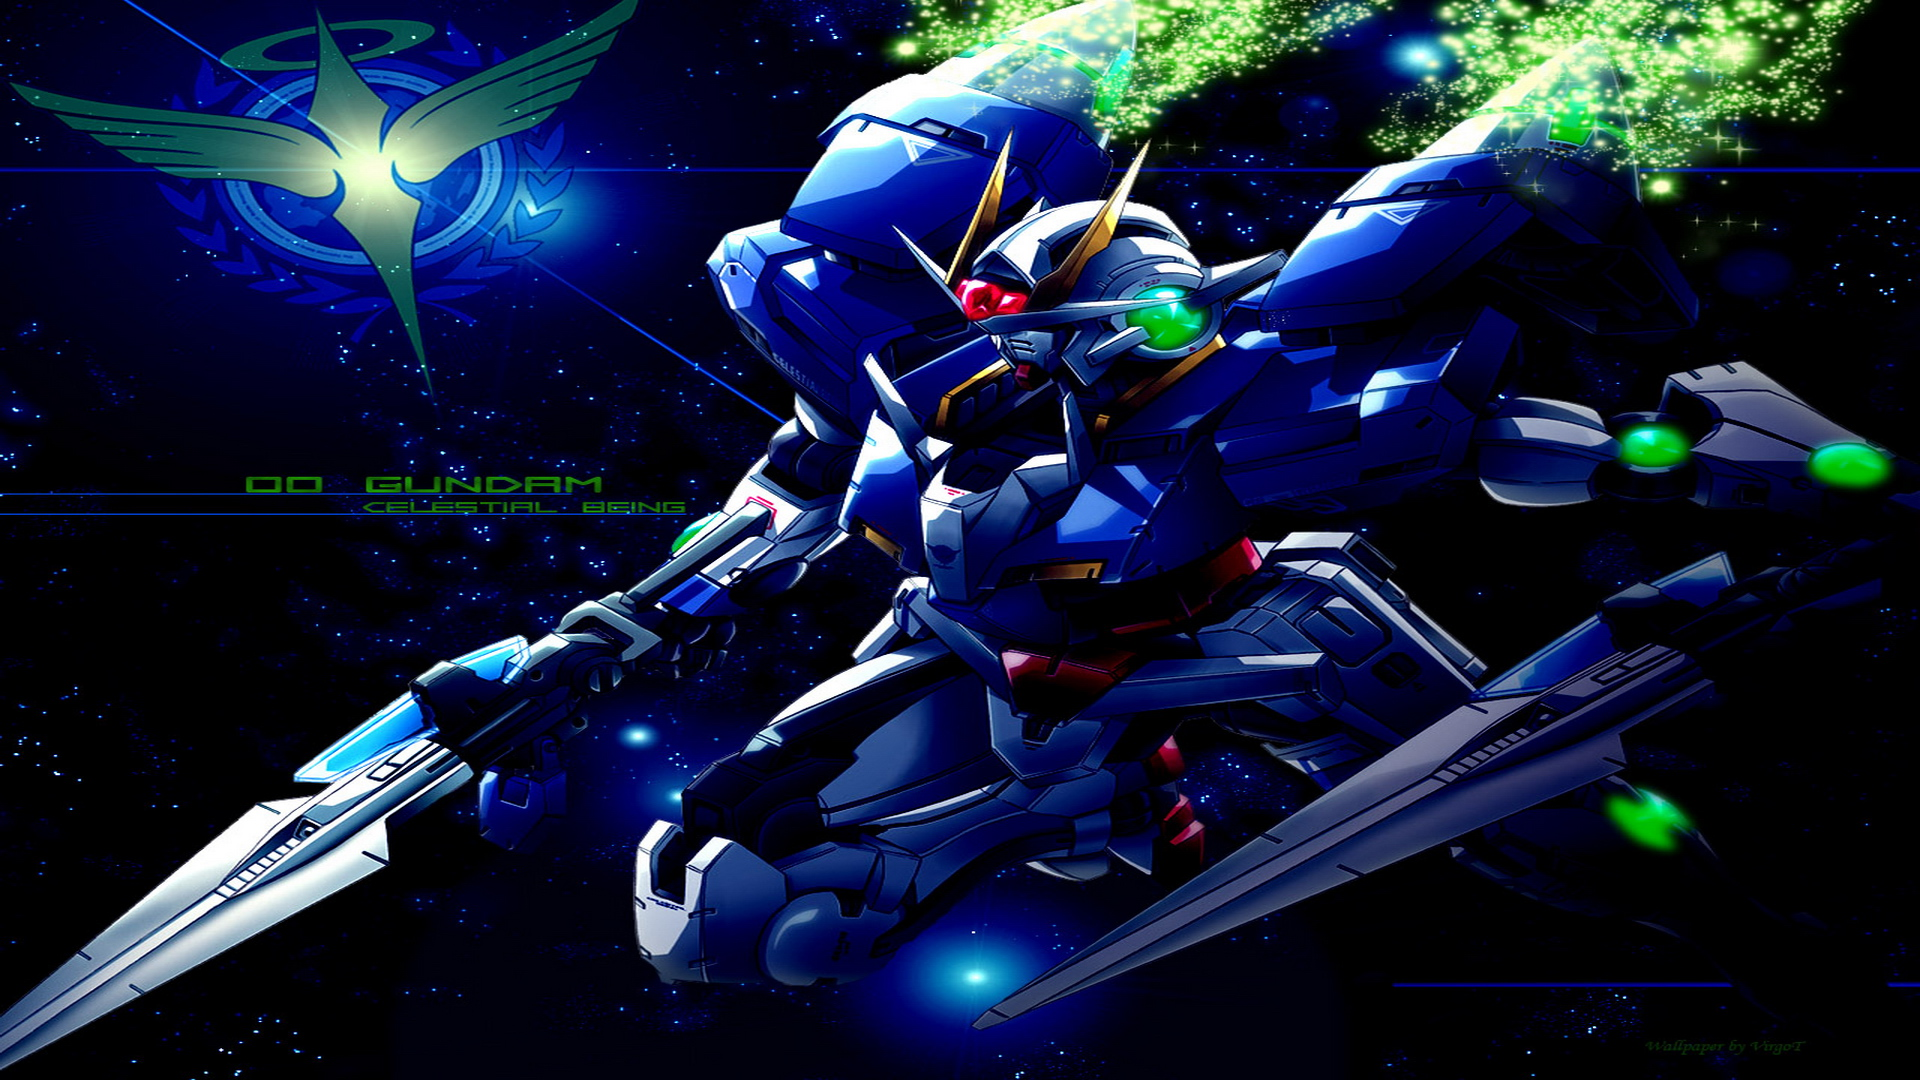 Wallpapers HD Desktop Wallpapers Gundam Wallpapers 30jpg 1920 x 1920x1080